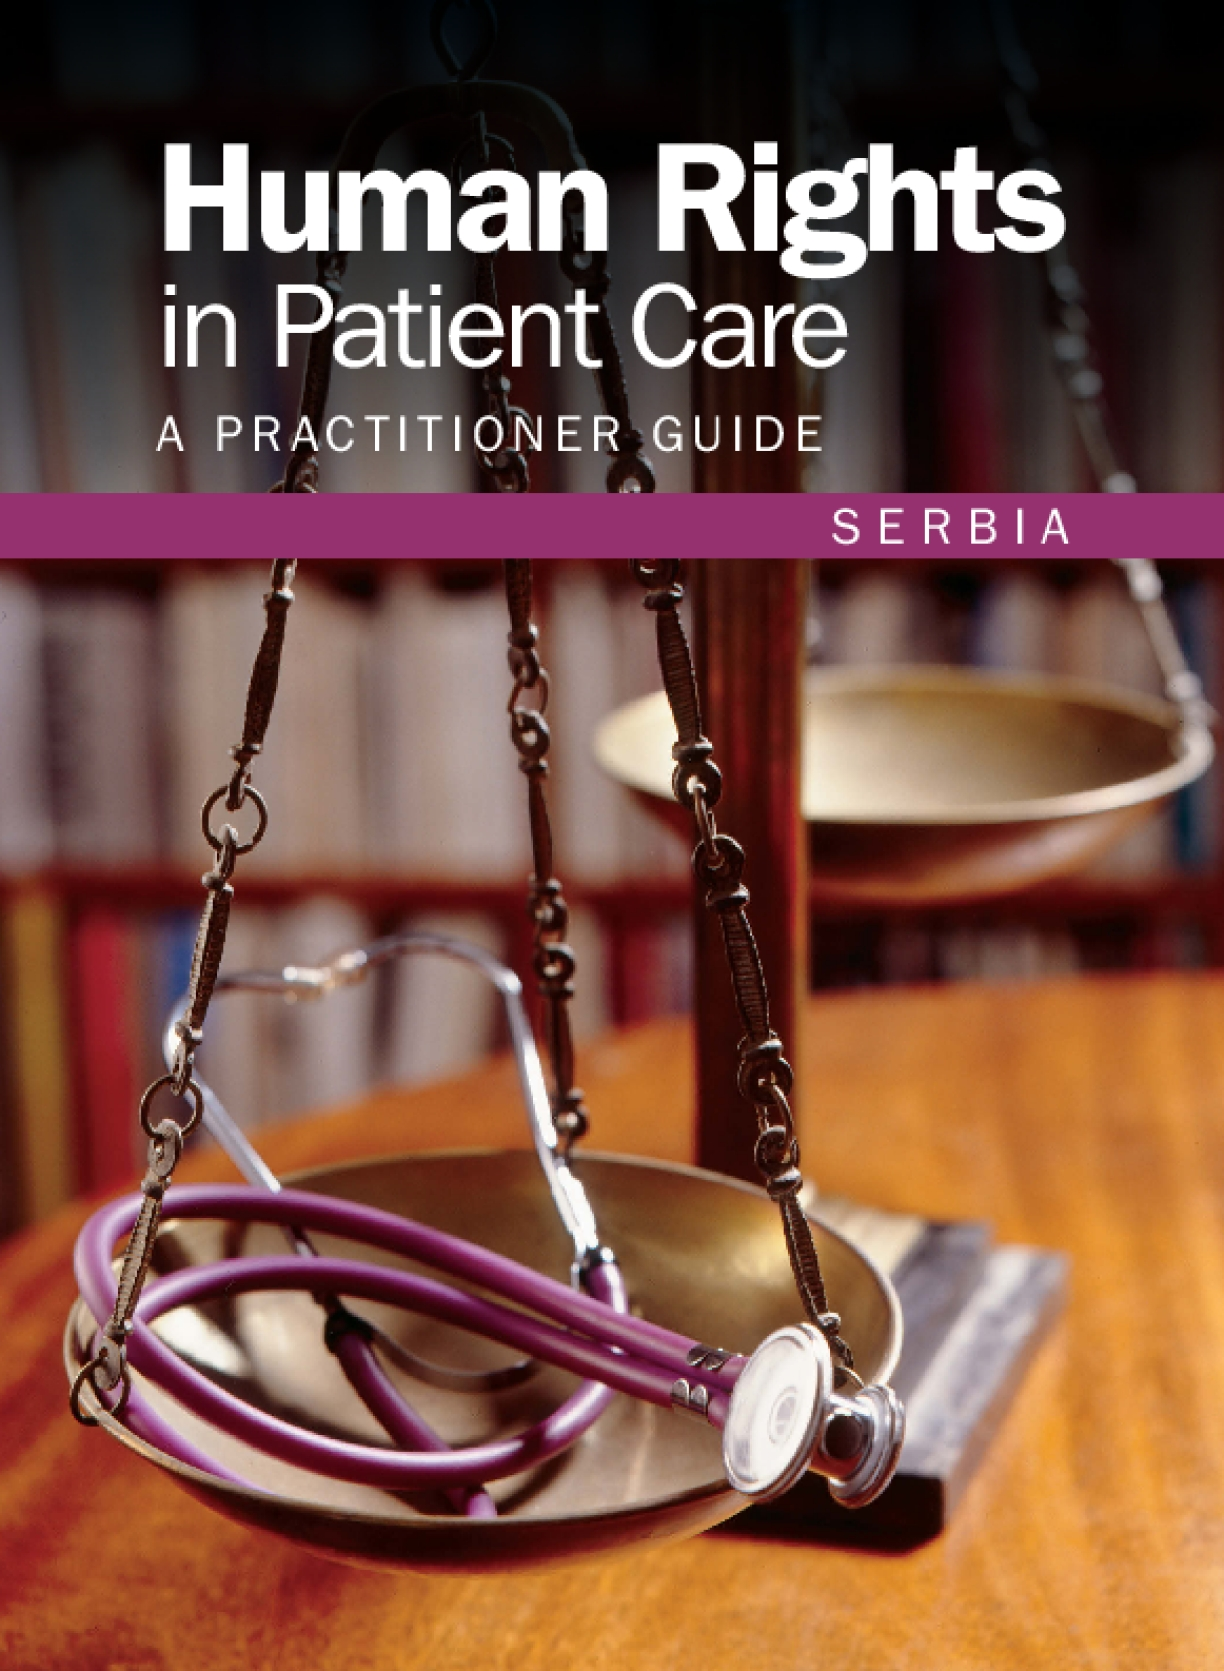 Human Rights in Patient Care: A Practitioner Guide - Serbia